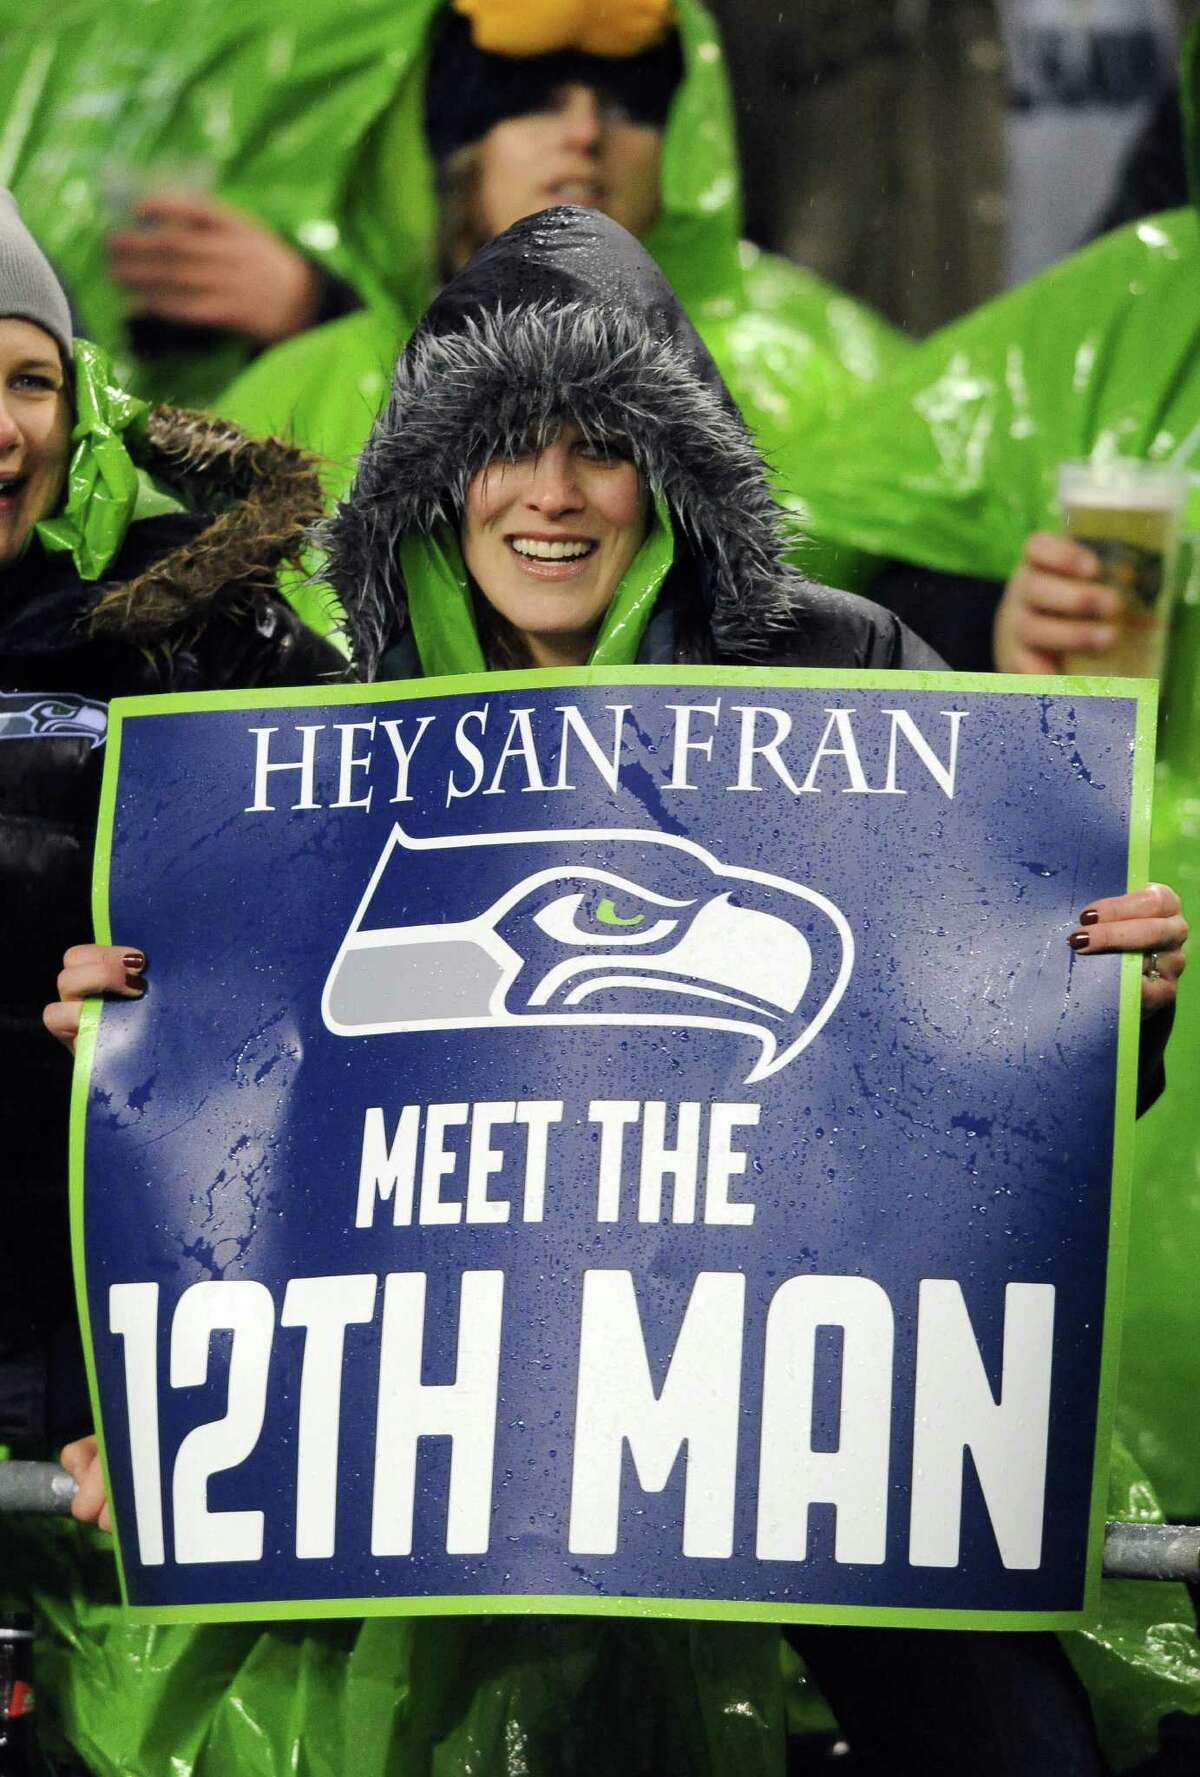 Seahawks fans at the famously loud CLink hope to set a world record for crowd noise later this year when the Hawks host San Francisco. Turkish soccer fans currently hold that honor.